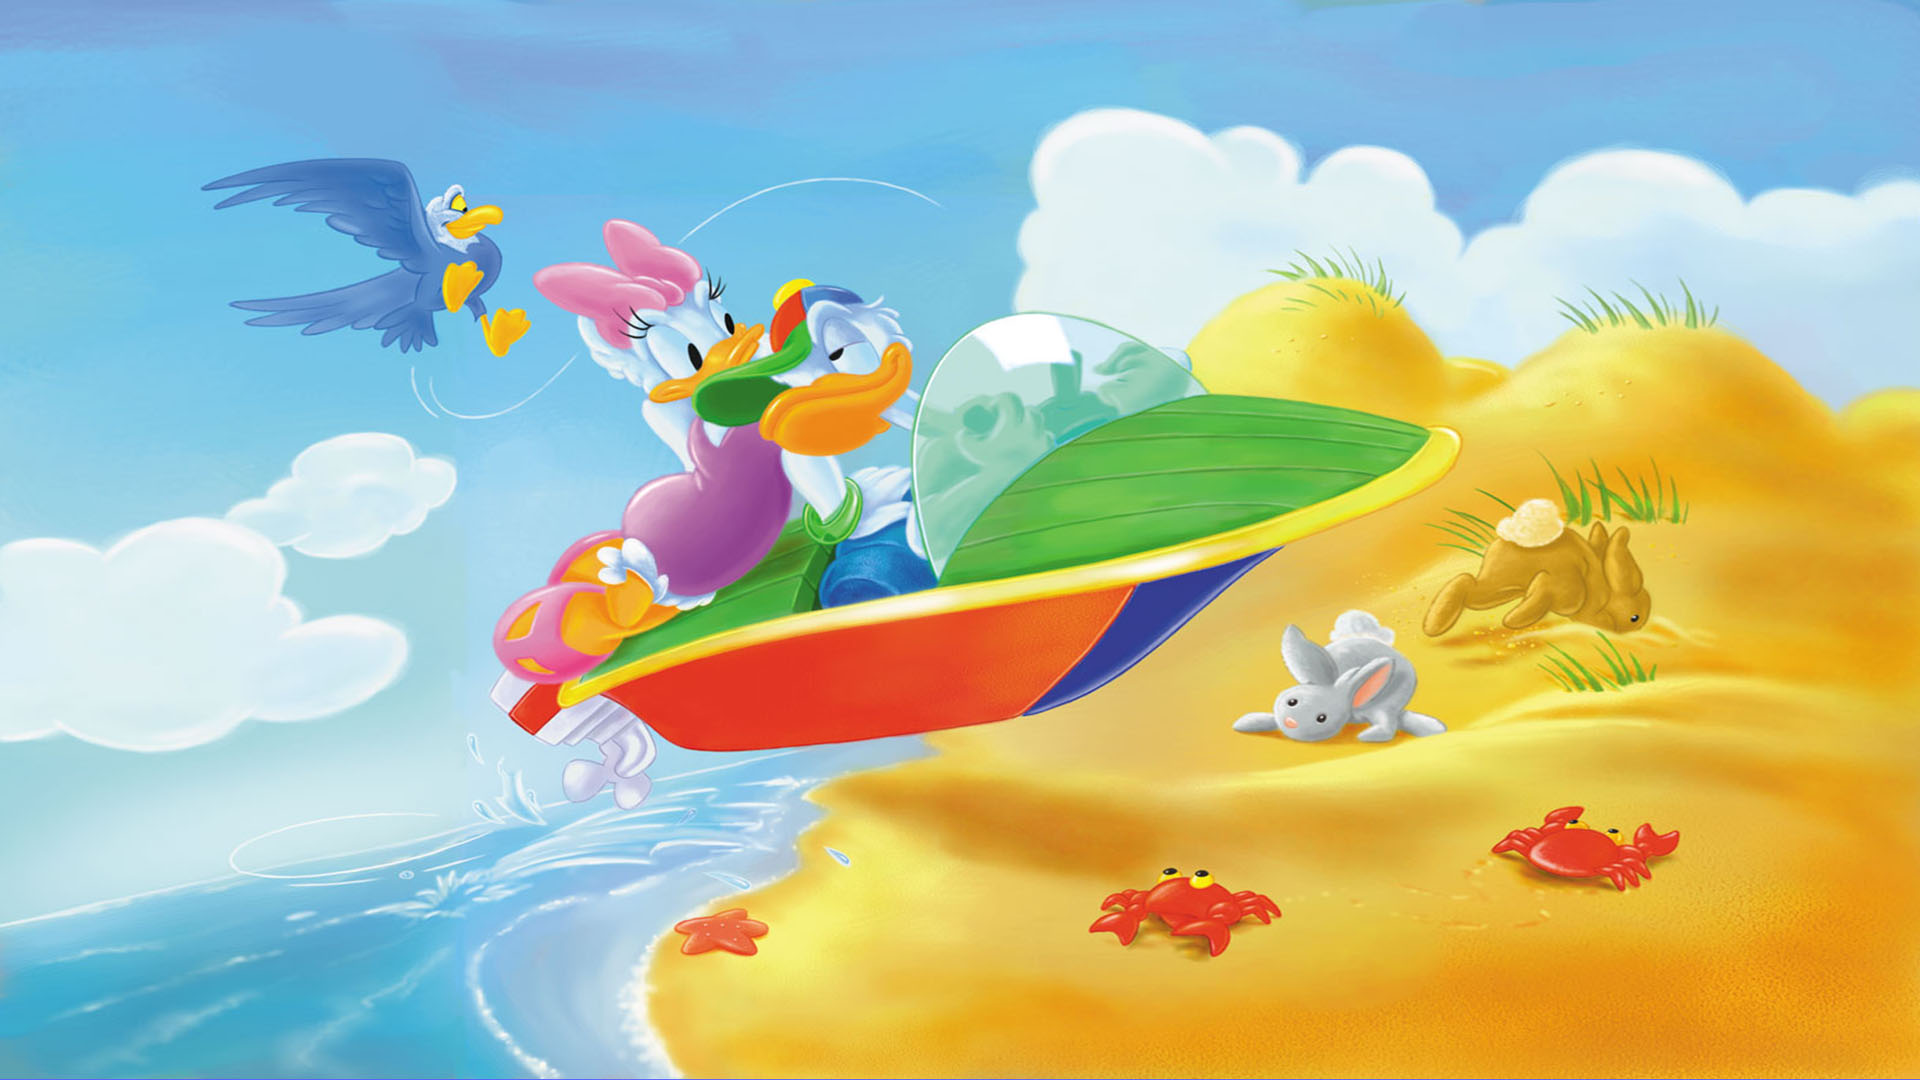 Cartoon Wallpaper Iphone X Donald Duck And Daisy Riding Motorboat Photo Wallpaper Hd